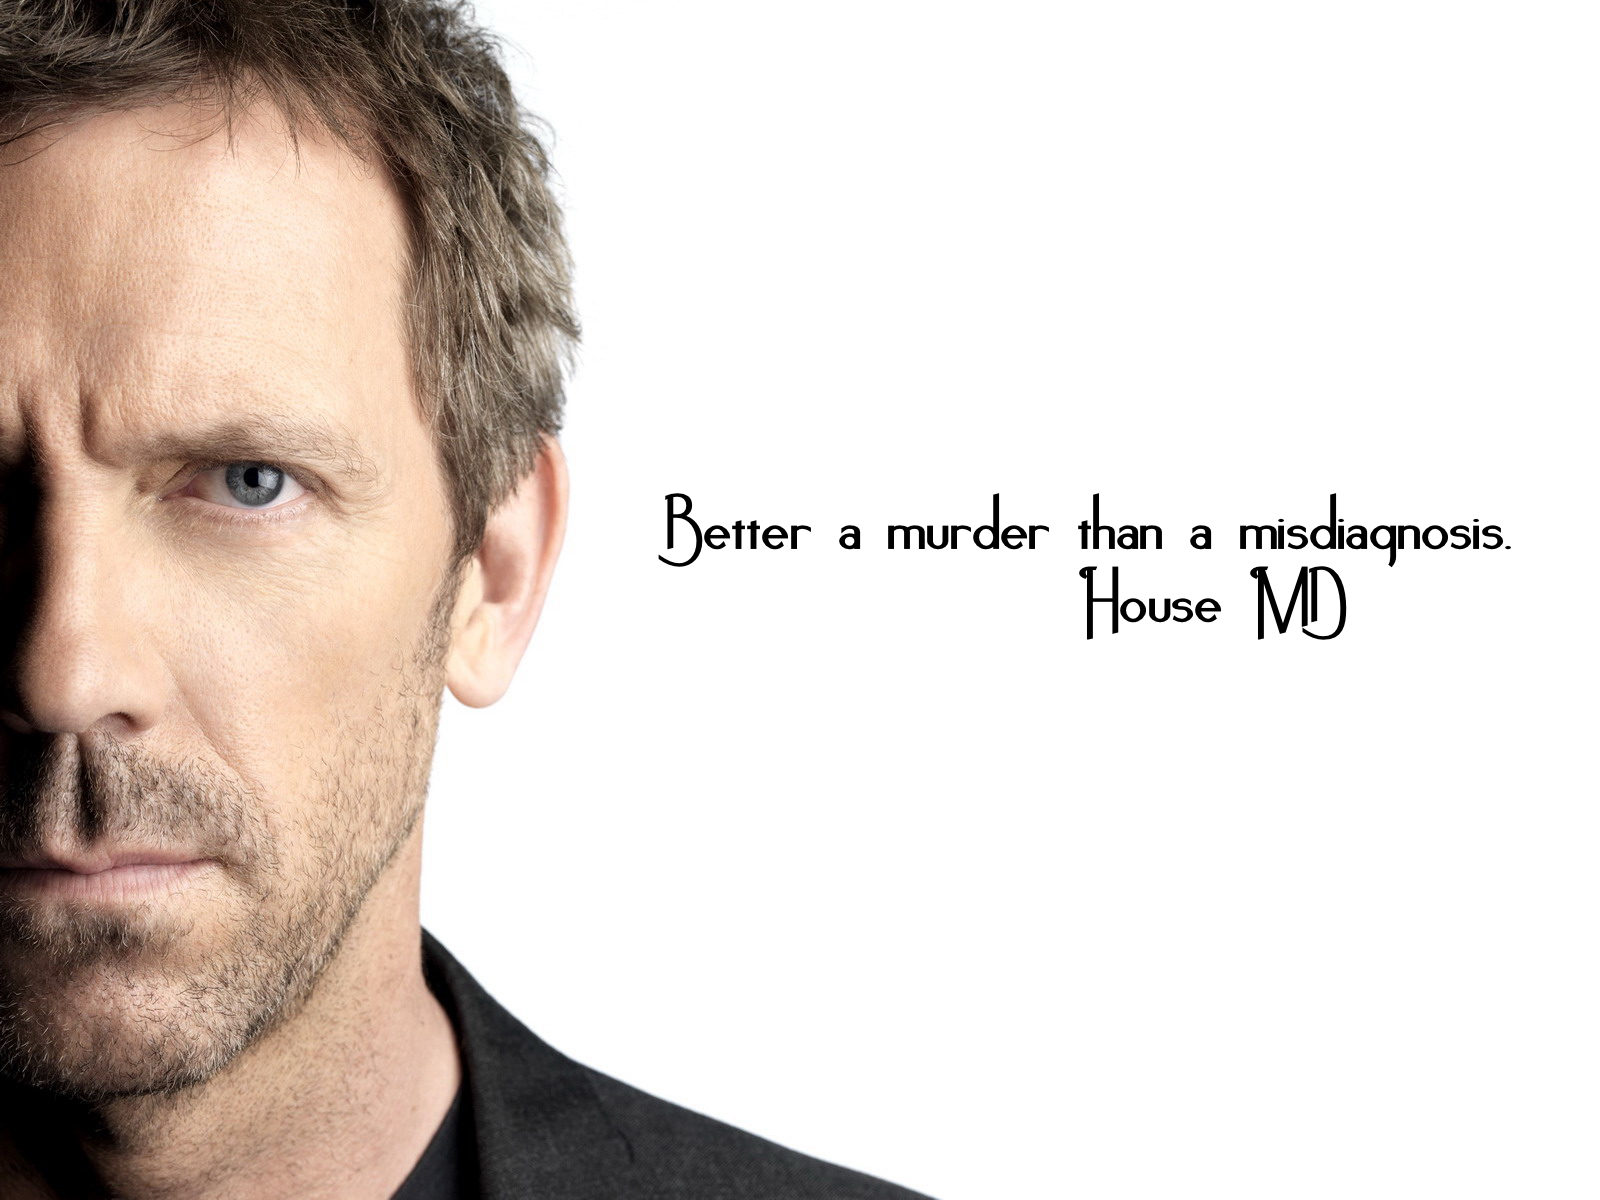 Hugh Laurie's quote #1